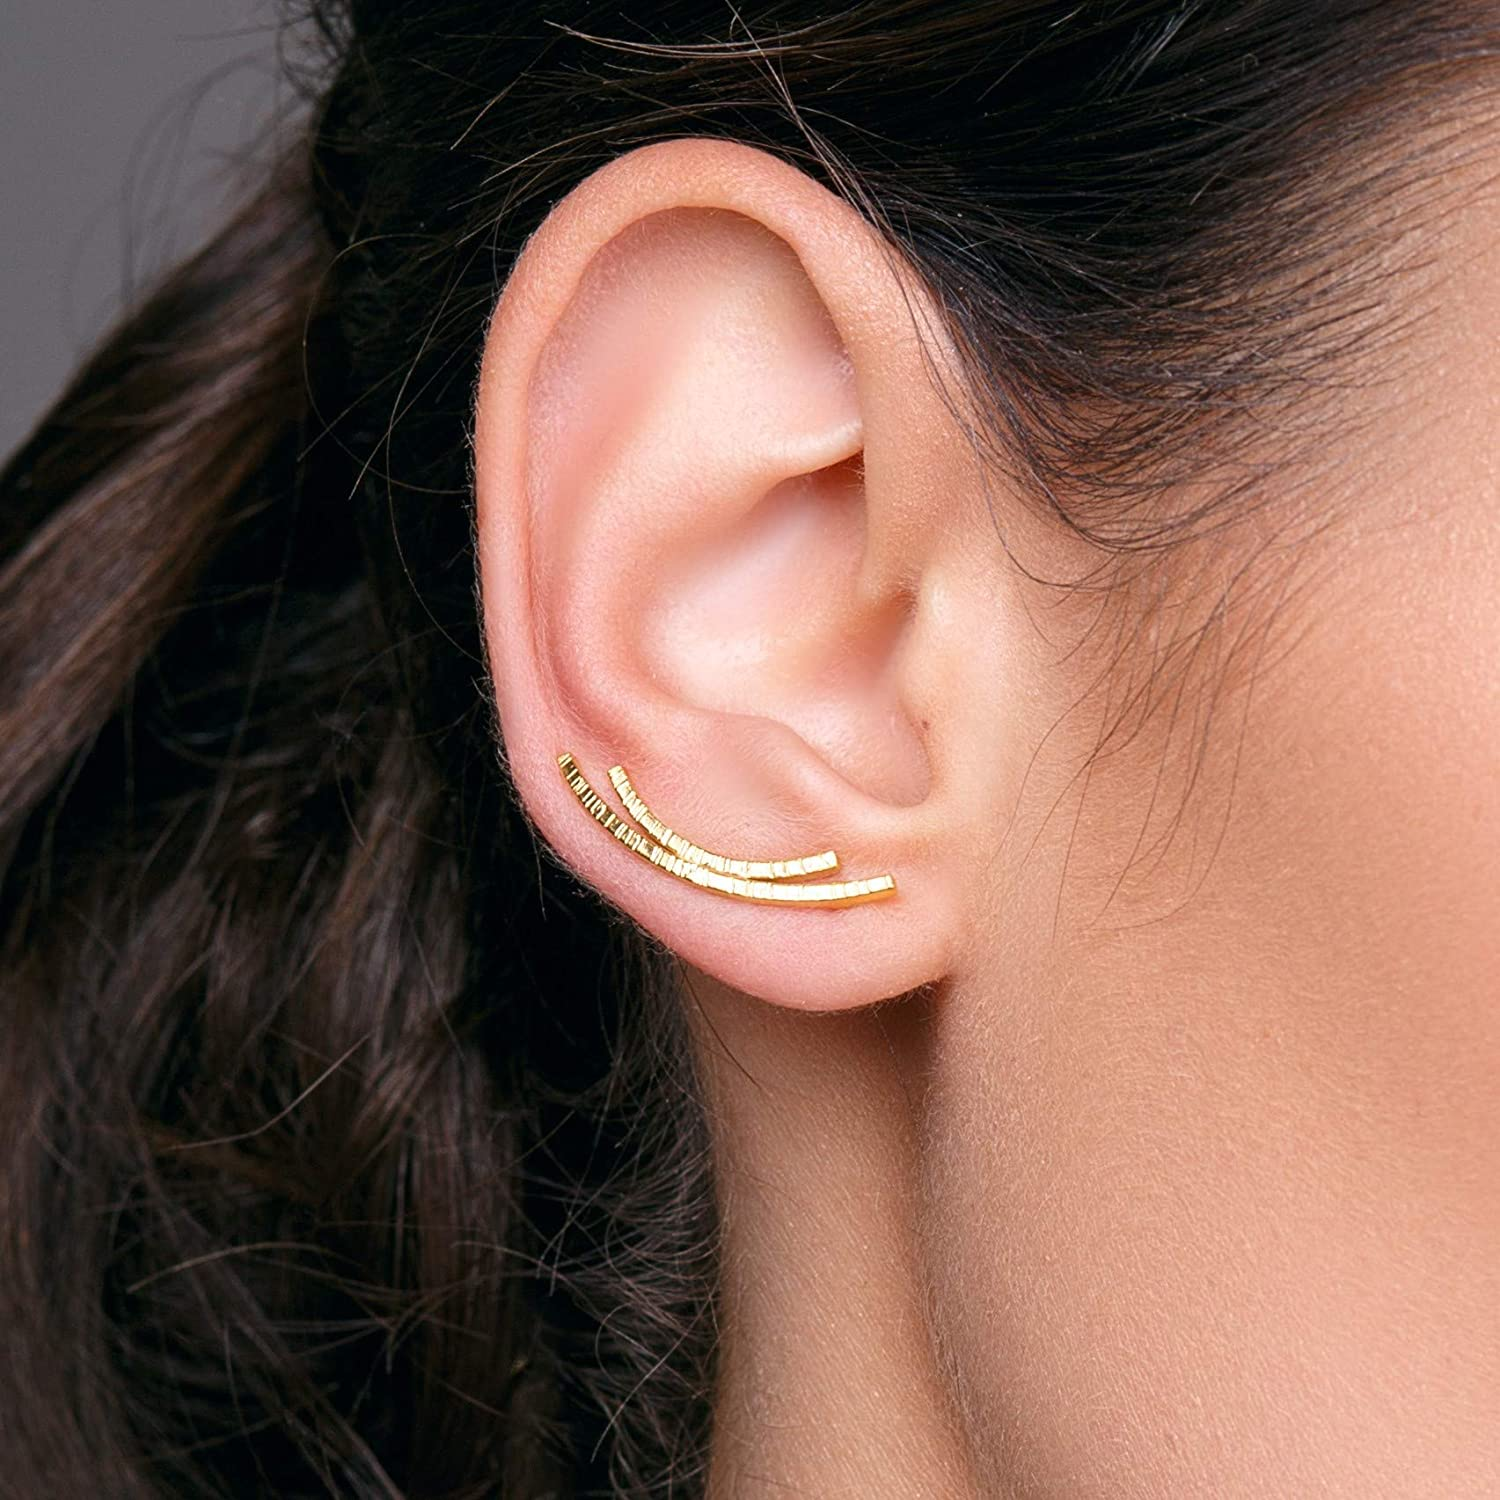 Pair of ear crawlers, curved bar stud earrings,earcuff earrings, hypoallergenic bar earrings, gold ear climber earrings